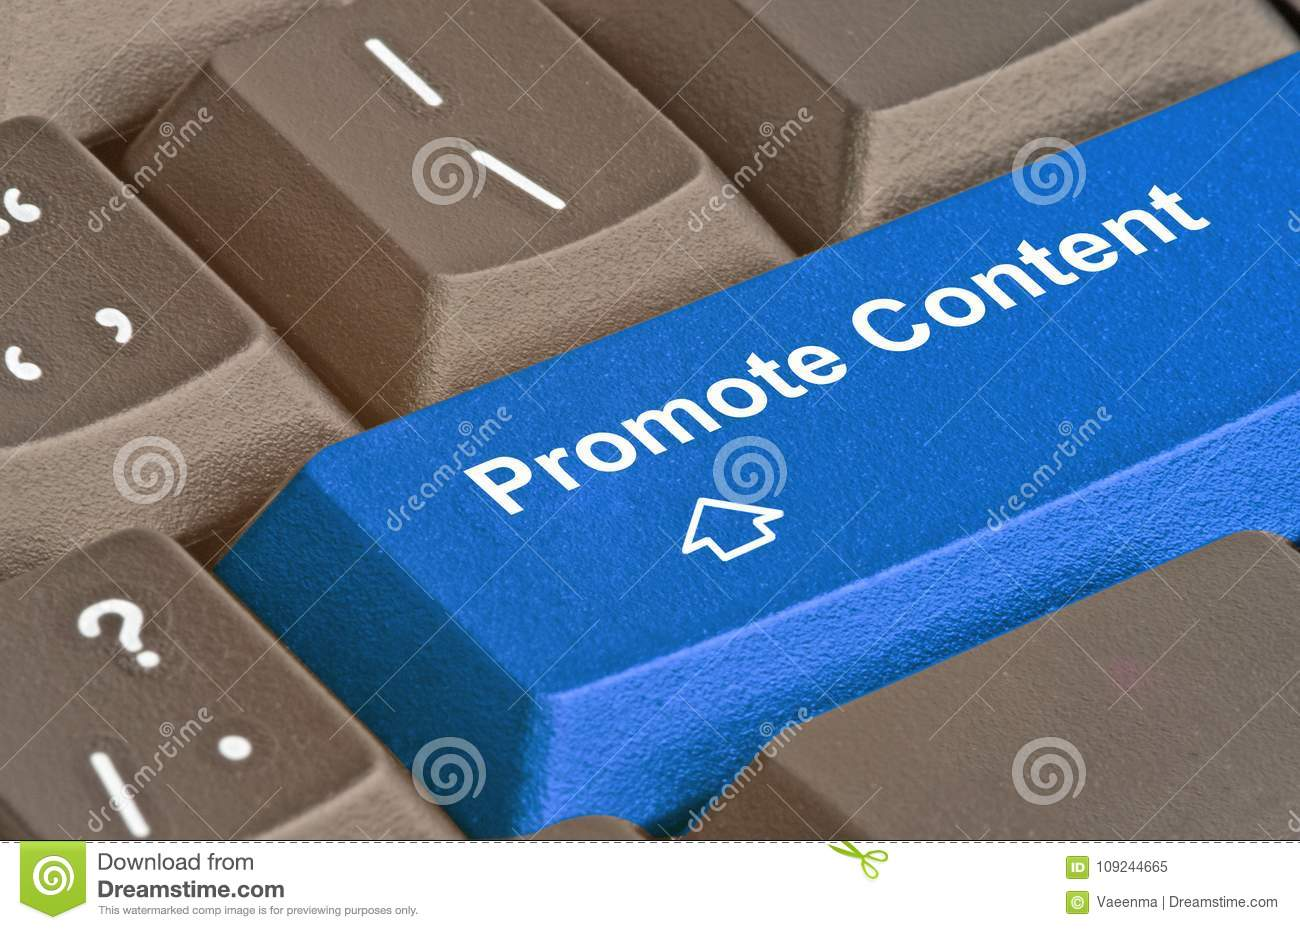 Key to promote content